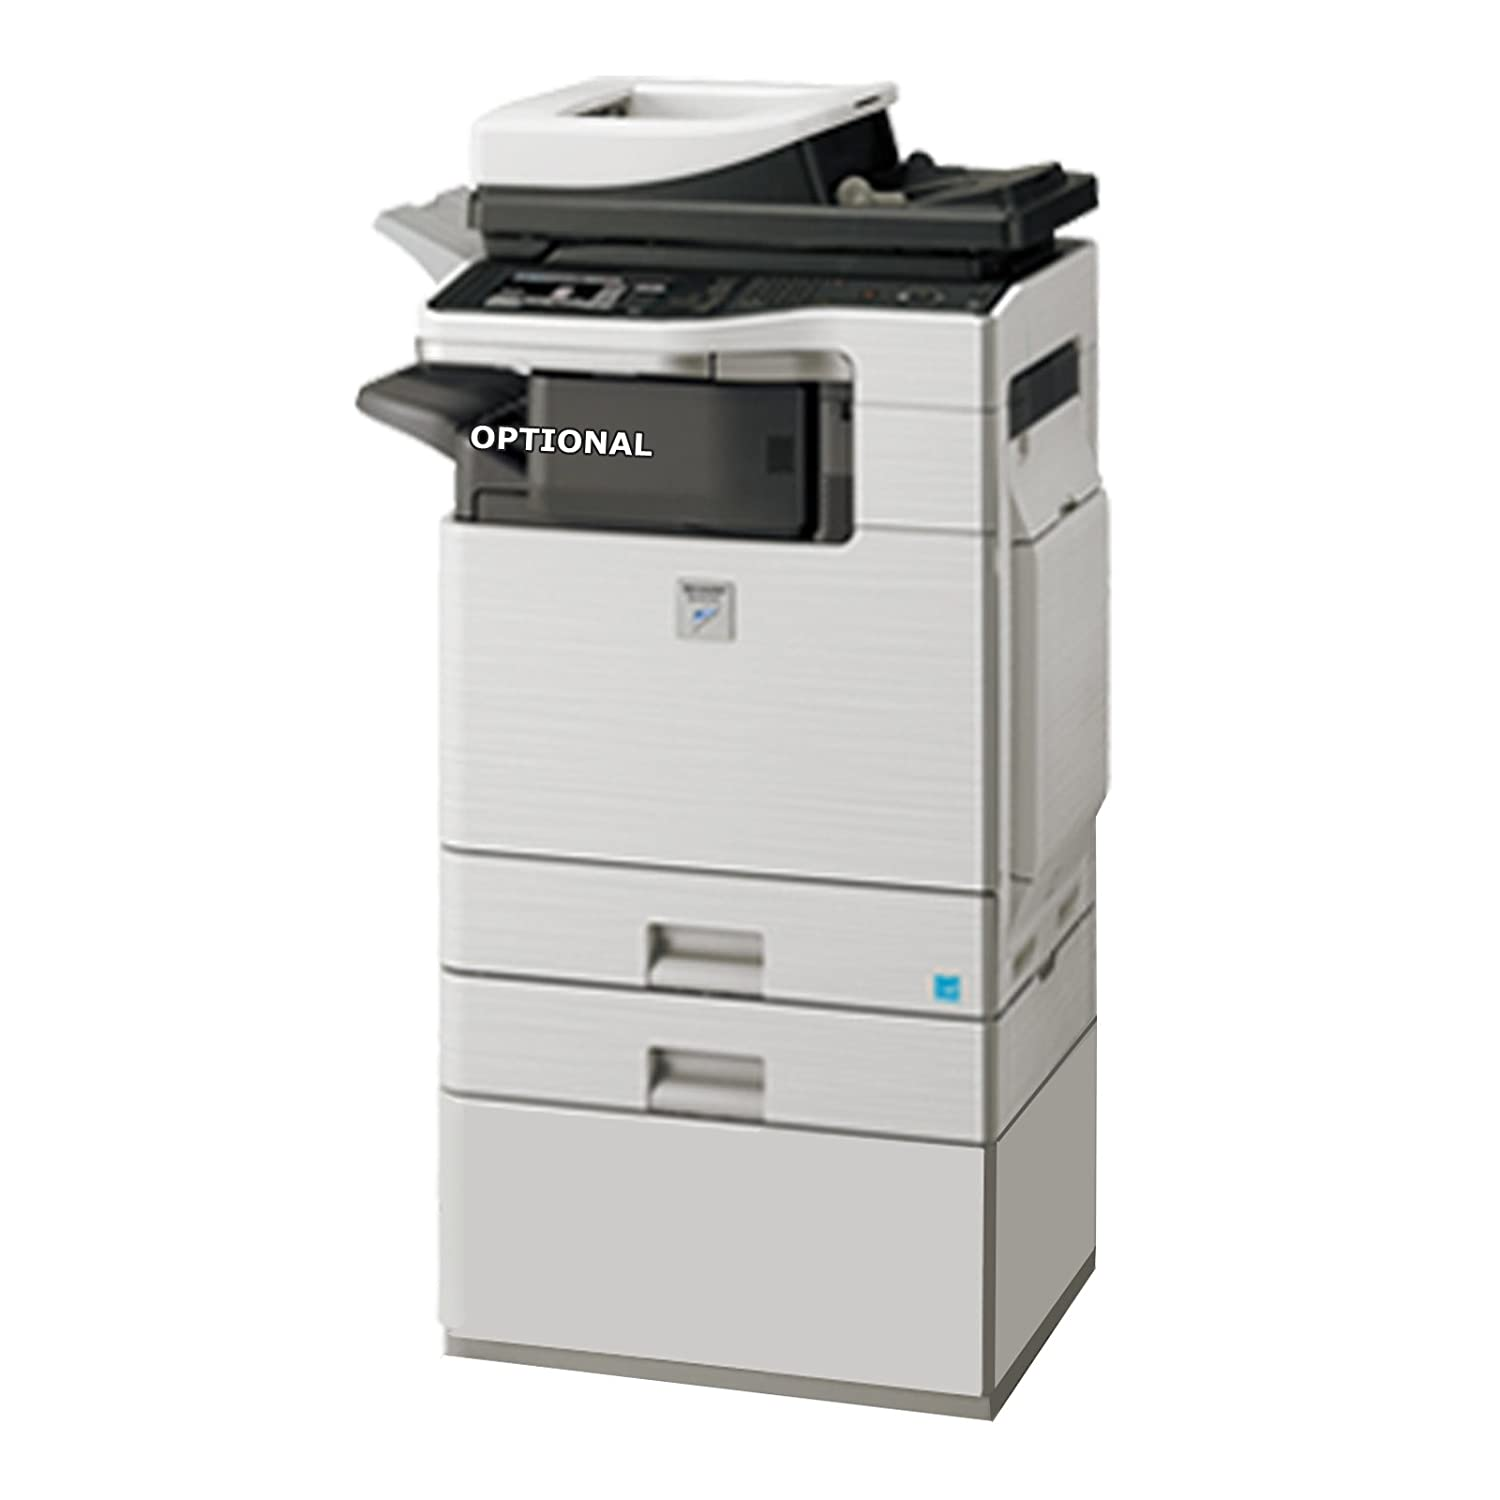 SHARP MX-B402 PRINTER PCL6 WINDOWS 10 DRIVERS